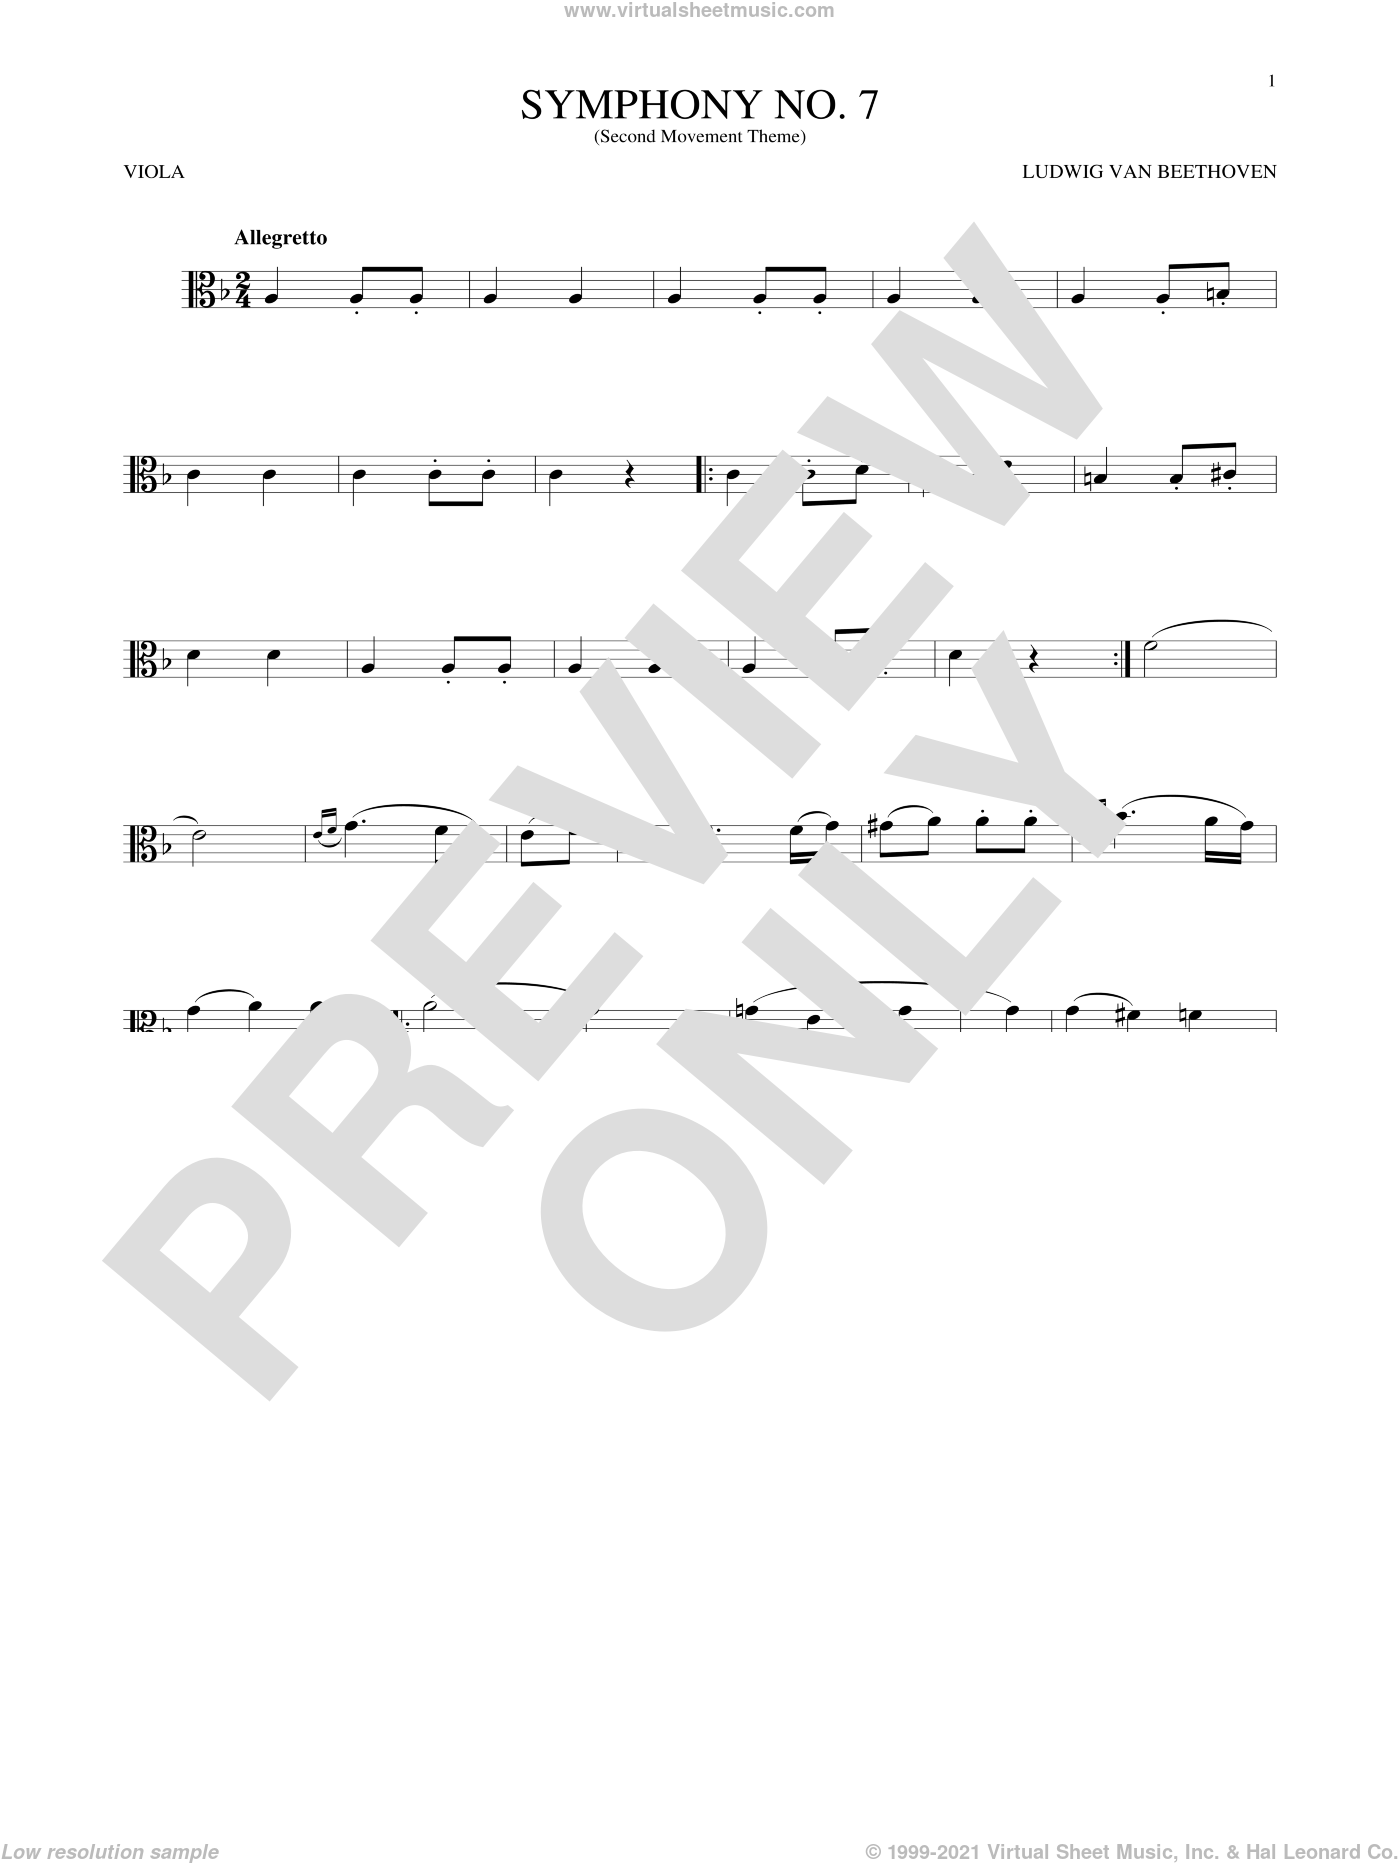 Symphony No. 7 In A Major, Second Movement (Allegretto) sheet music for viola solo by Ludwig van Beethoven, classical score, intermediate skill level